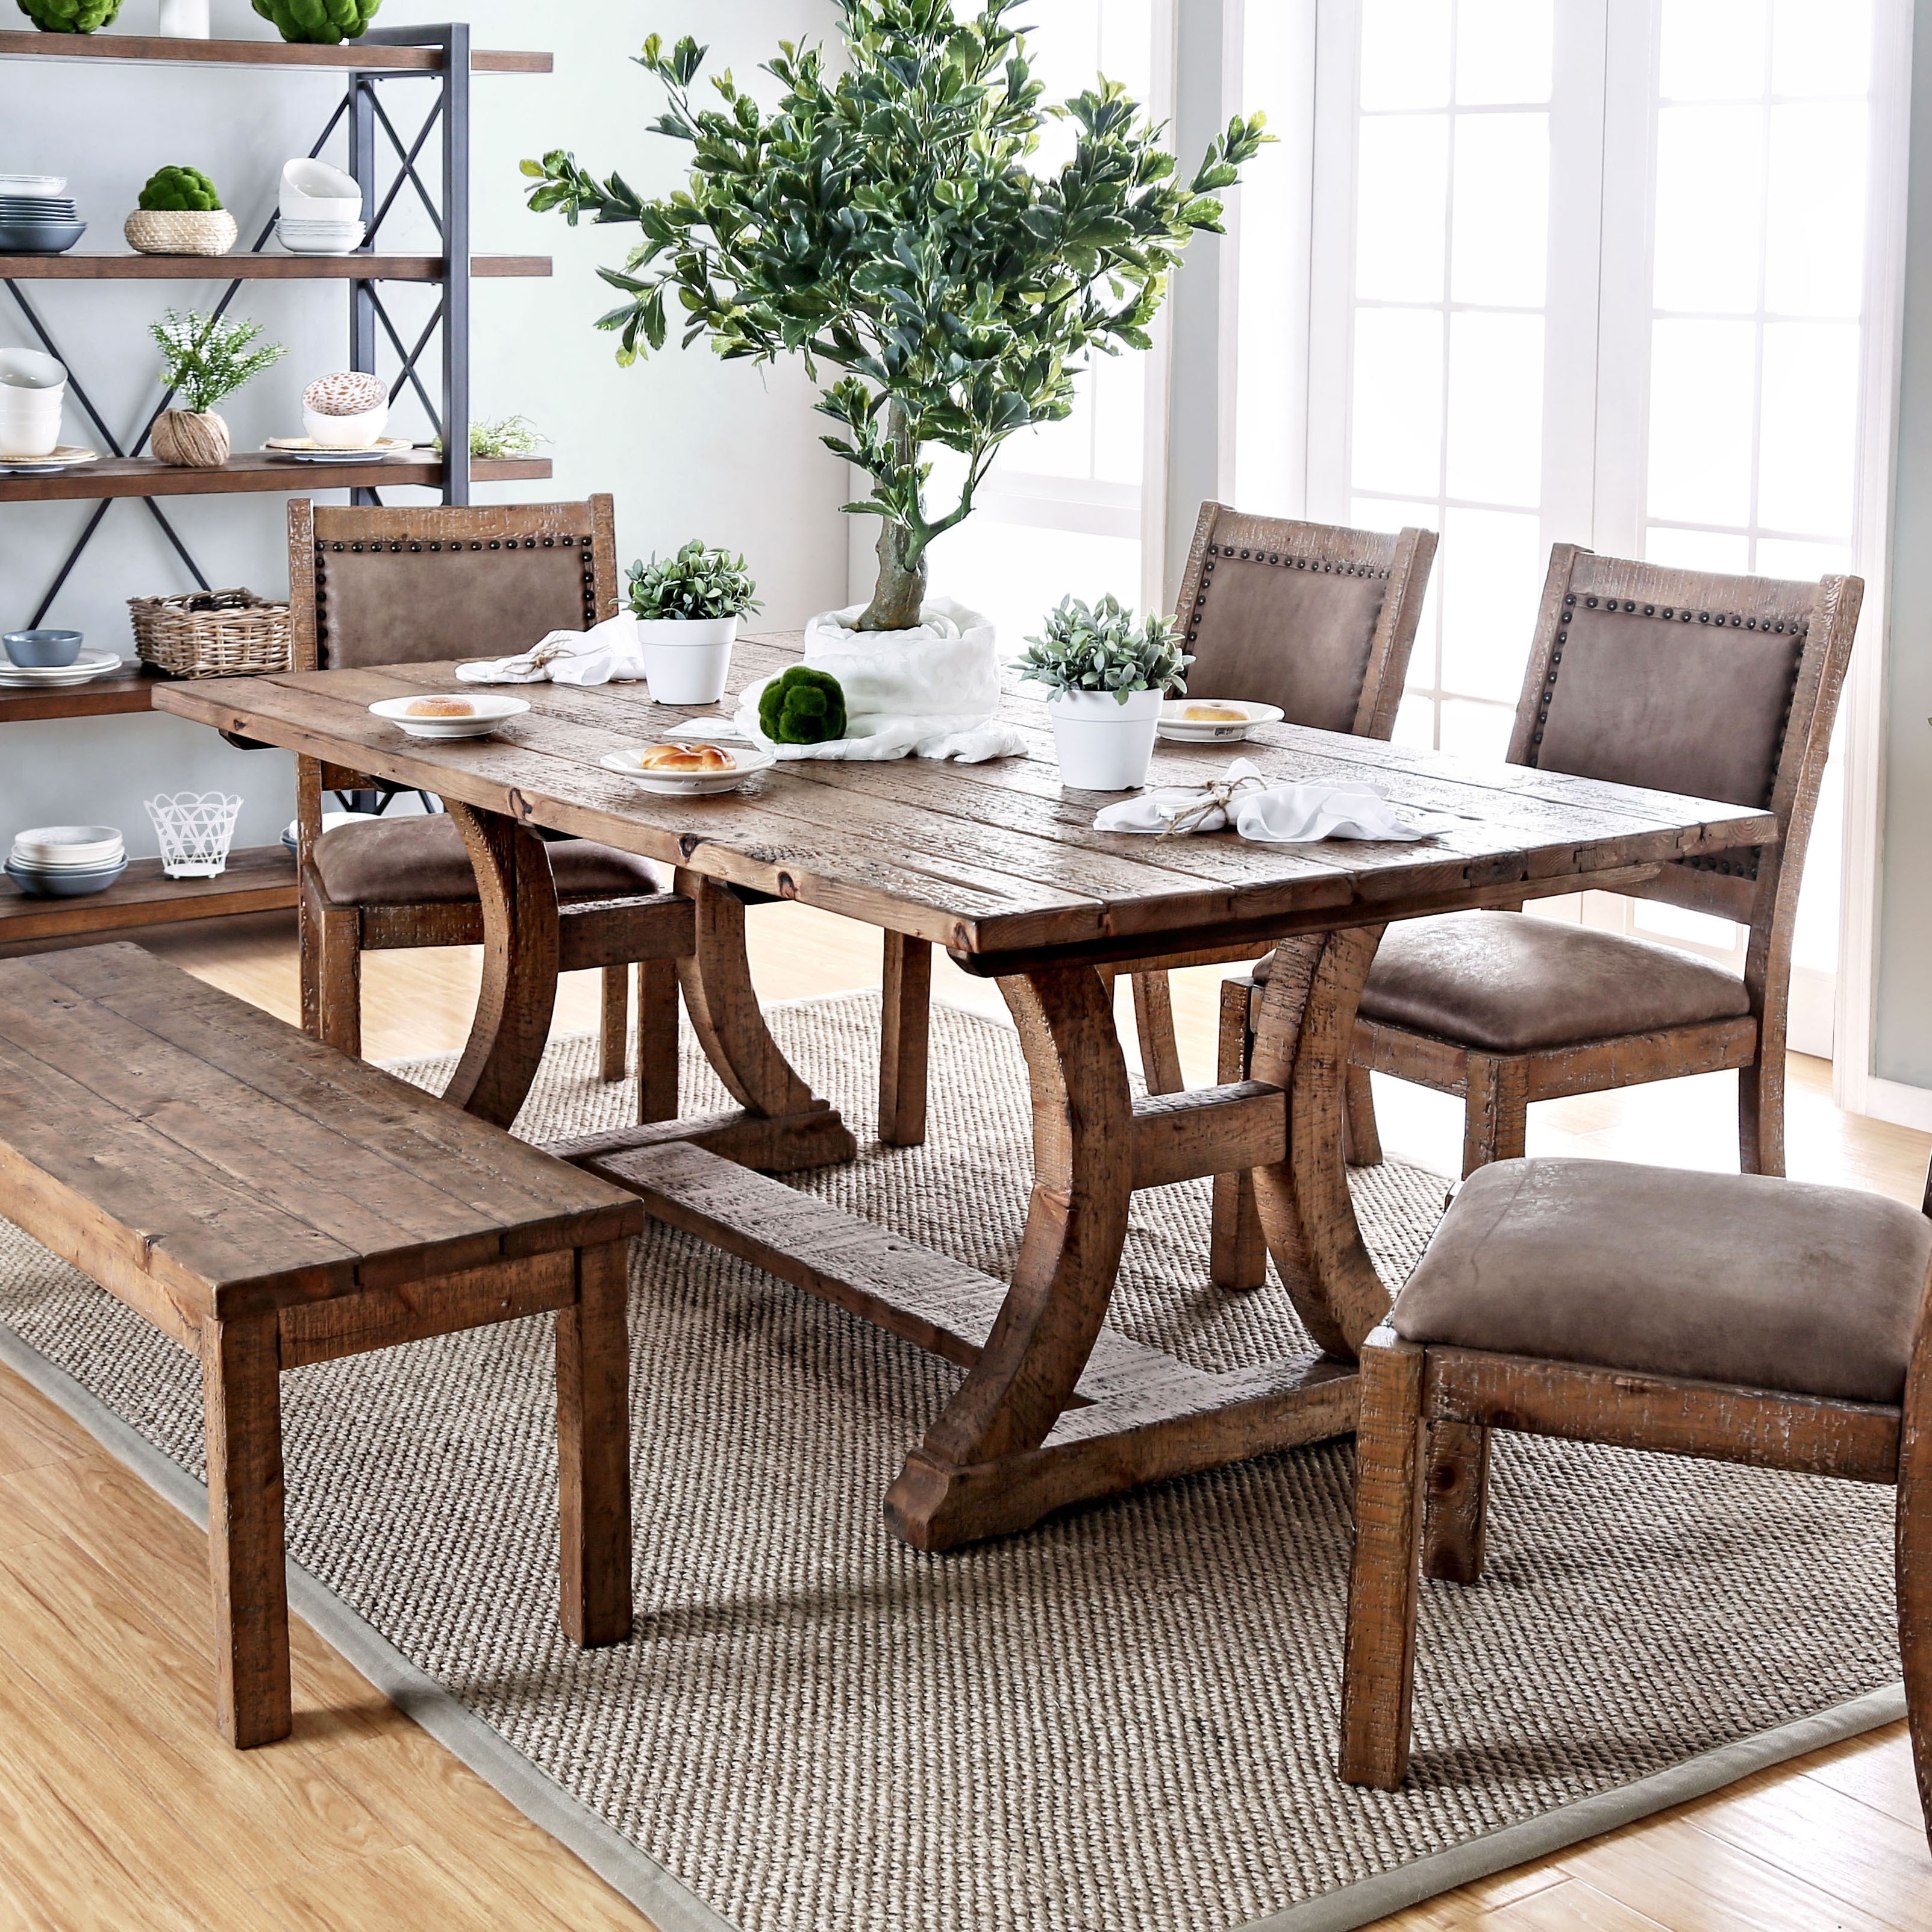 Shop furniture of america matthias industrial rustic pine dining table brown on sale free shipping today overstock com 11149919